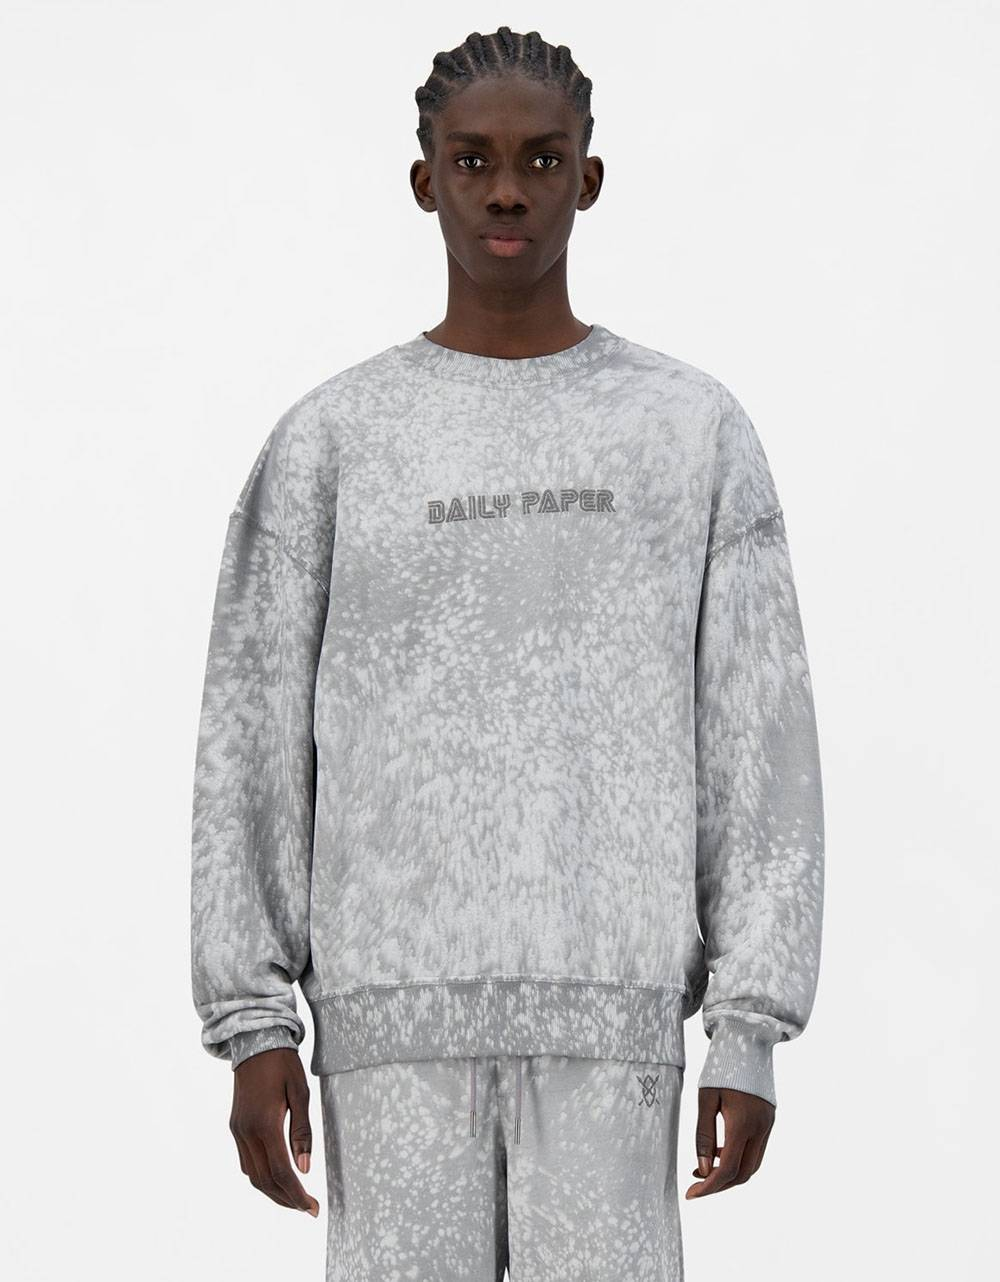 Daily Paper Jerspla crewneck sweater - grey violet DAILY PAPER Sweater 131,15€